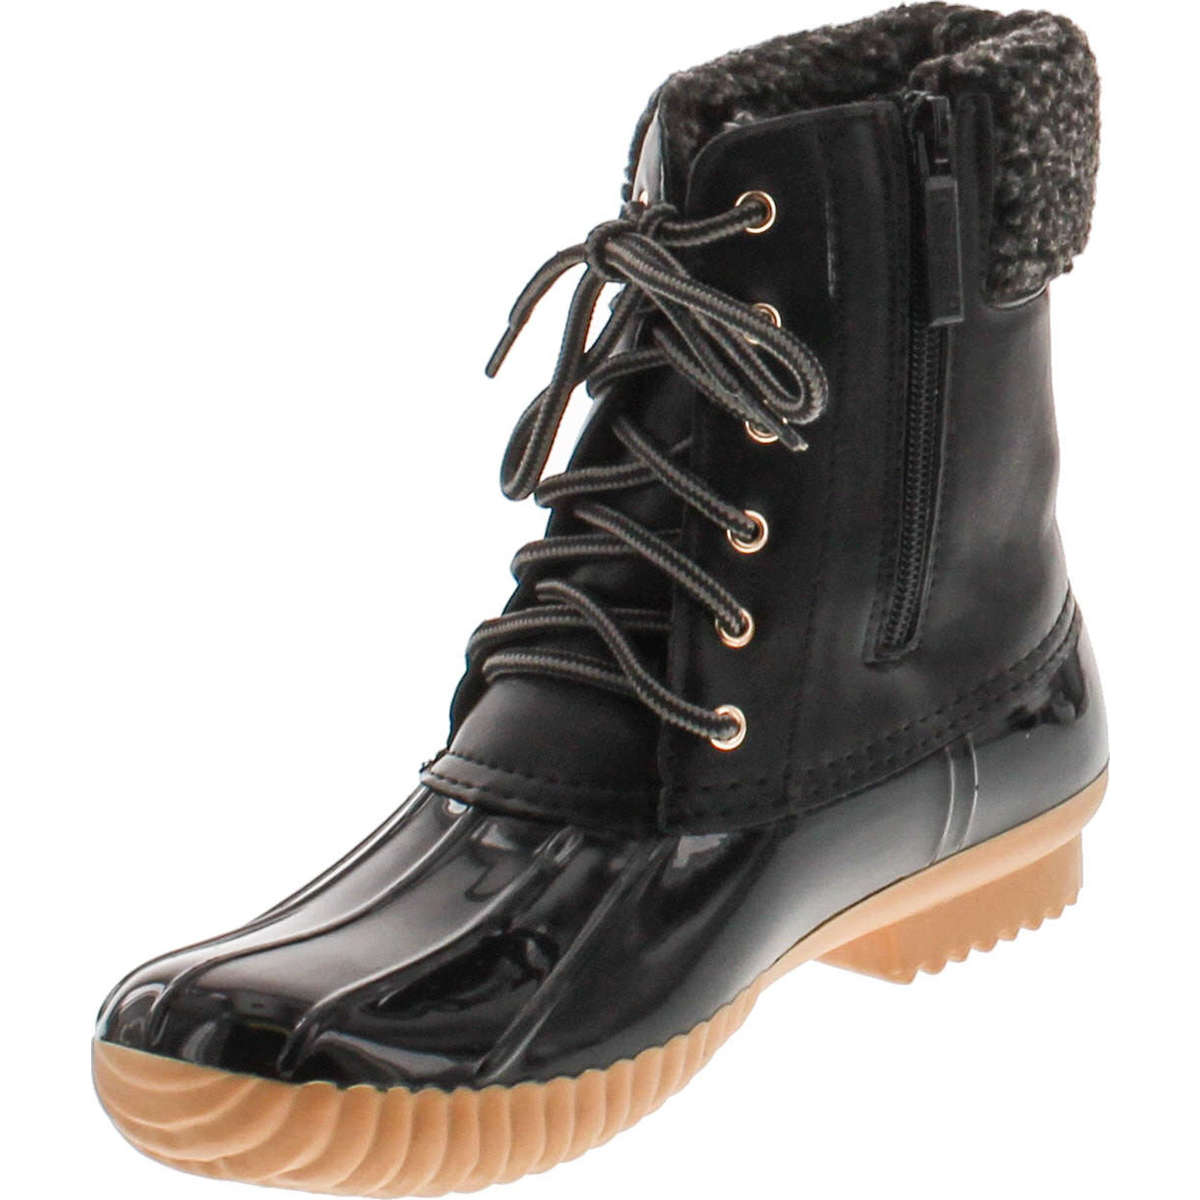 Nature Breeze Womens Stitching Lace Up Side Zip Waterproof Insulated Duck Boots